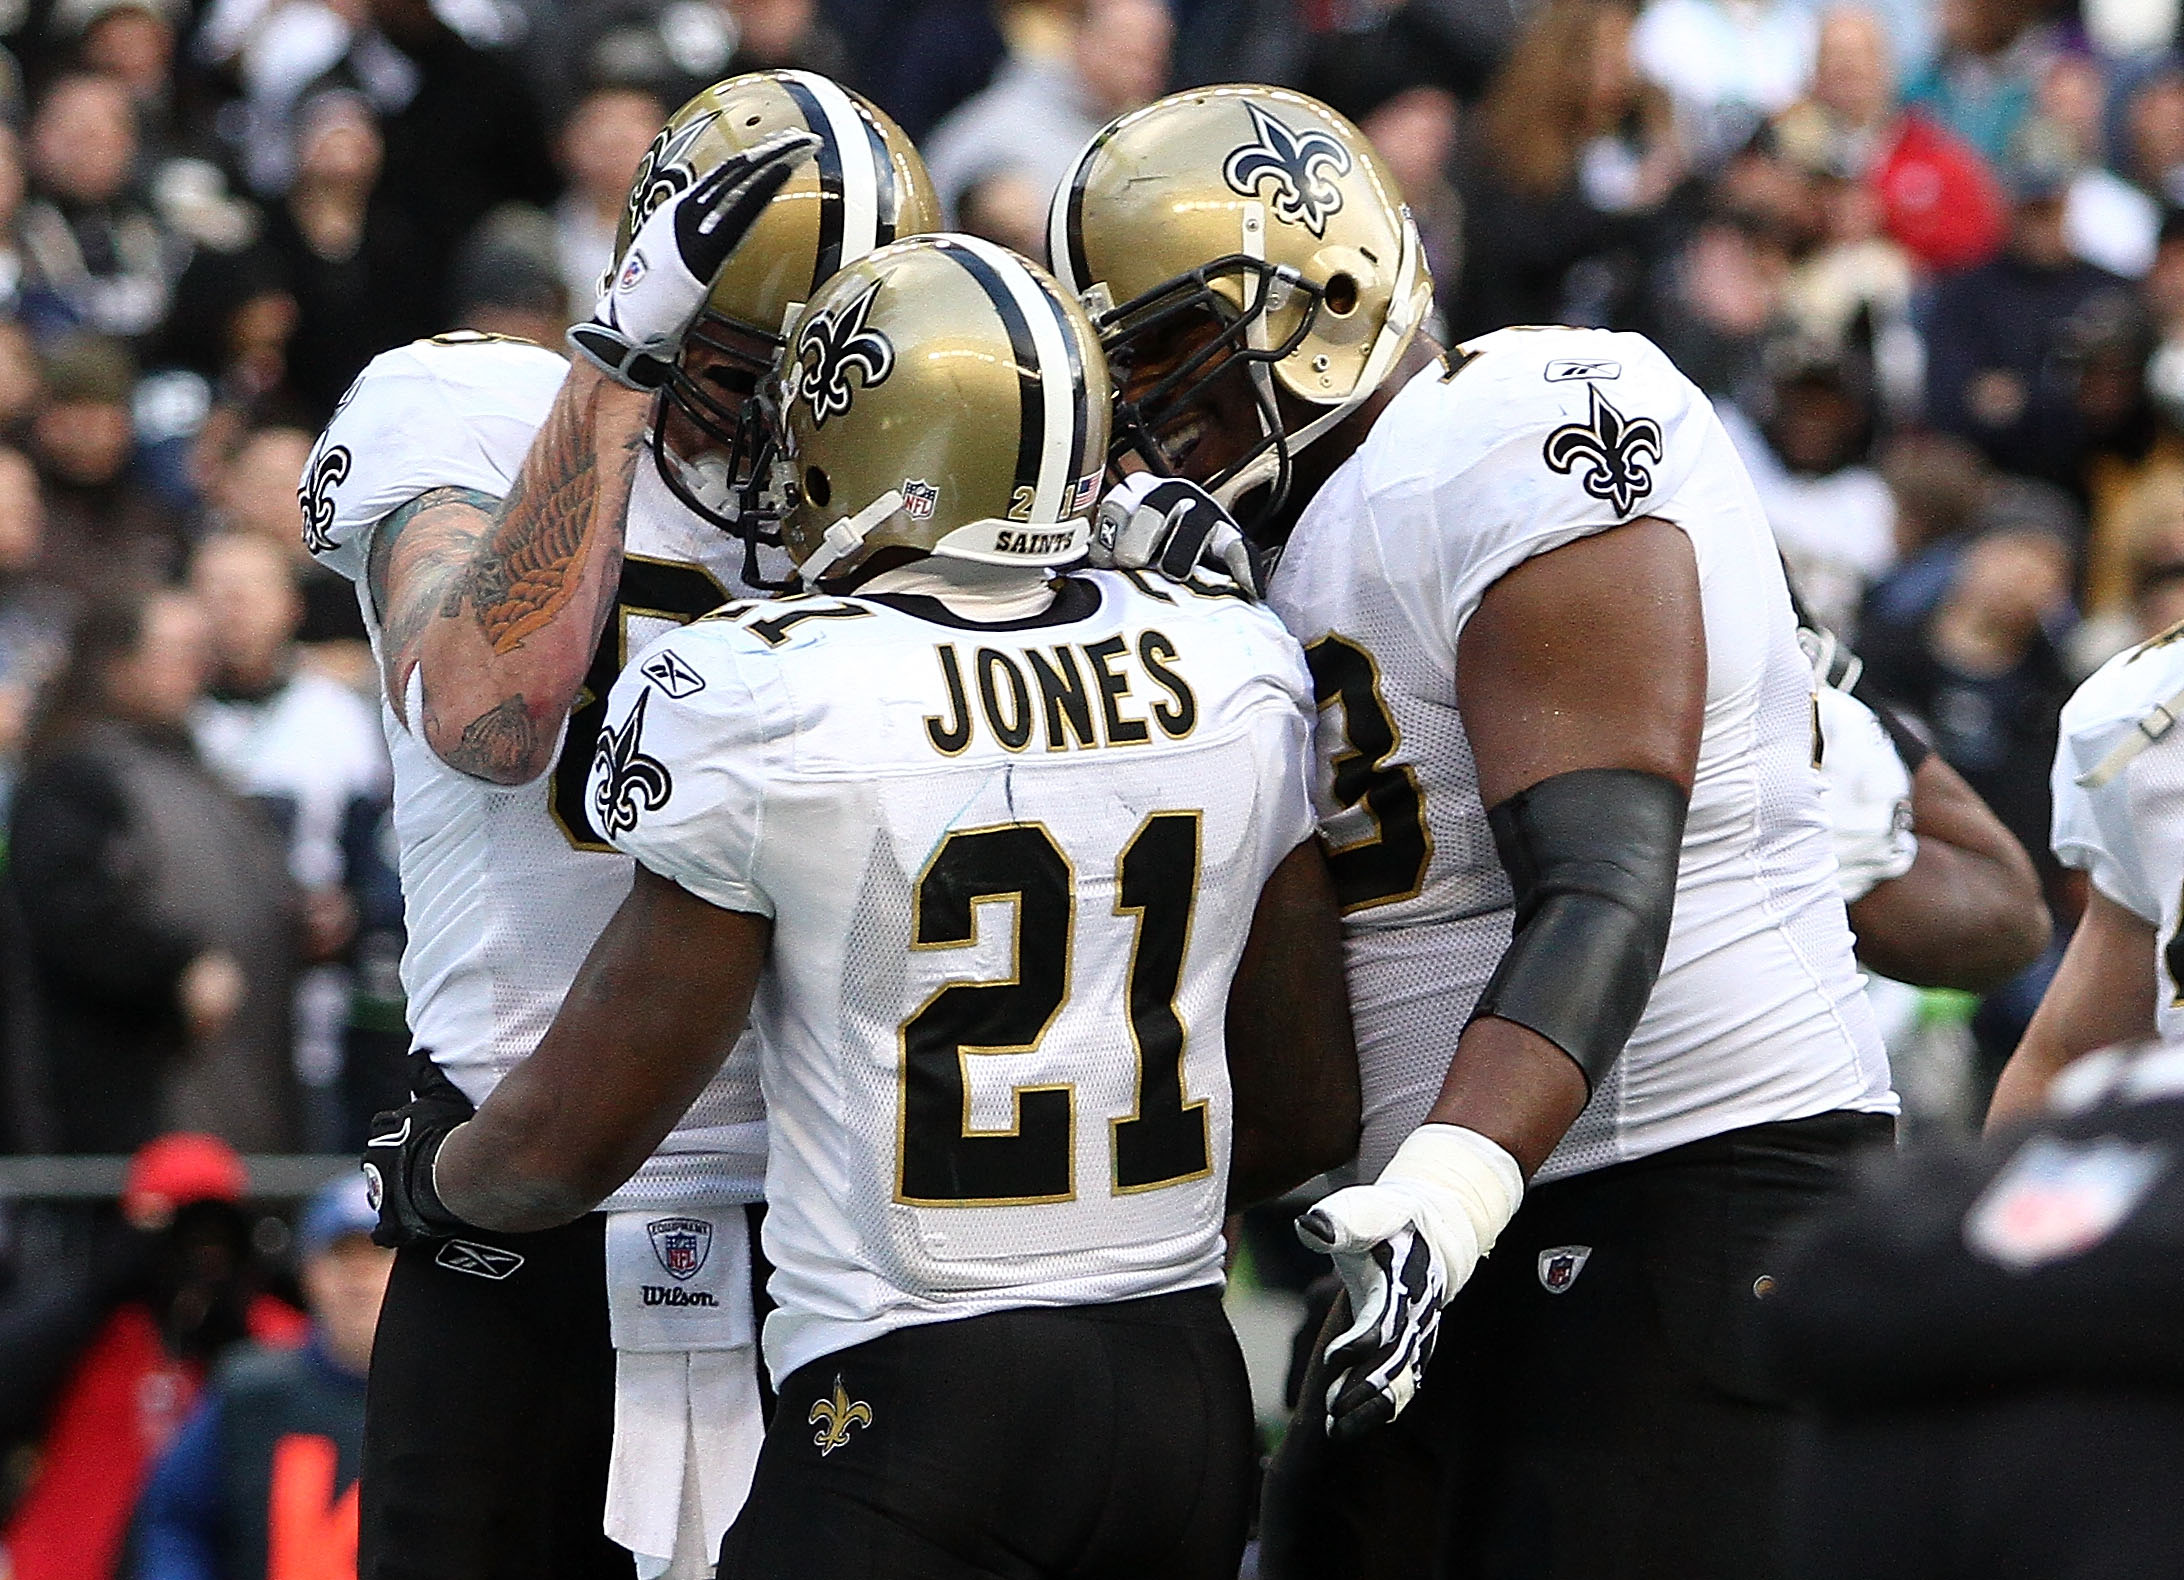 SEATTLE, WA - JANUARY 08:  Julius Jones #21 of the New Orleans Saints celebrates his five-yard touchdown run in the second quarter with teammates against the Seattle Seahawks during the 2011 NFC wild-card playoff game at Qwest Field on January 8, 2011 in